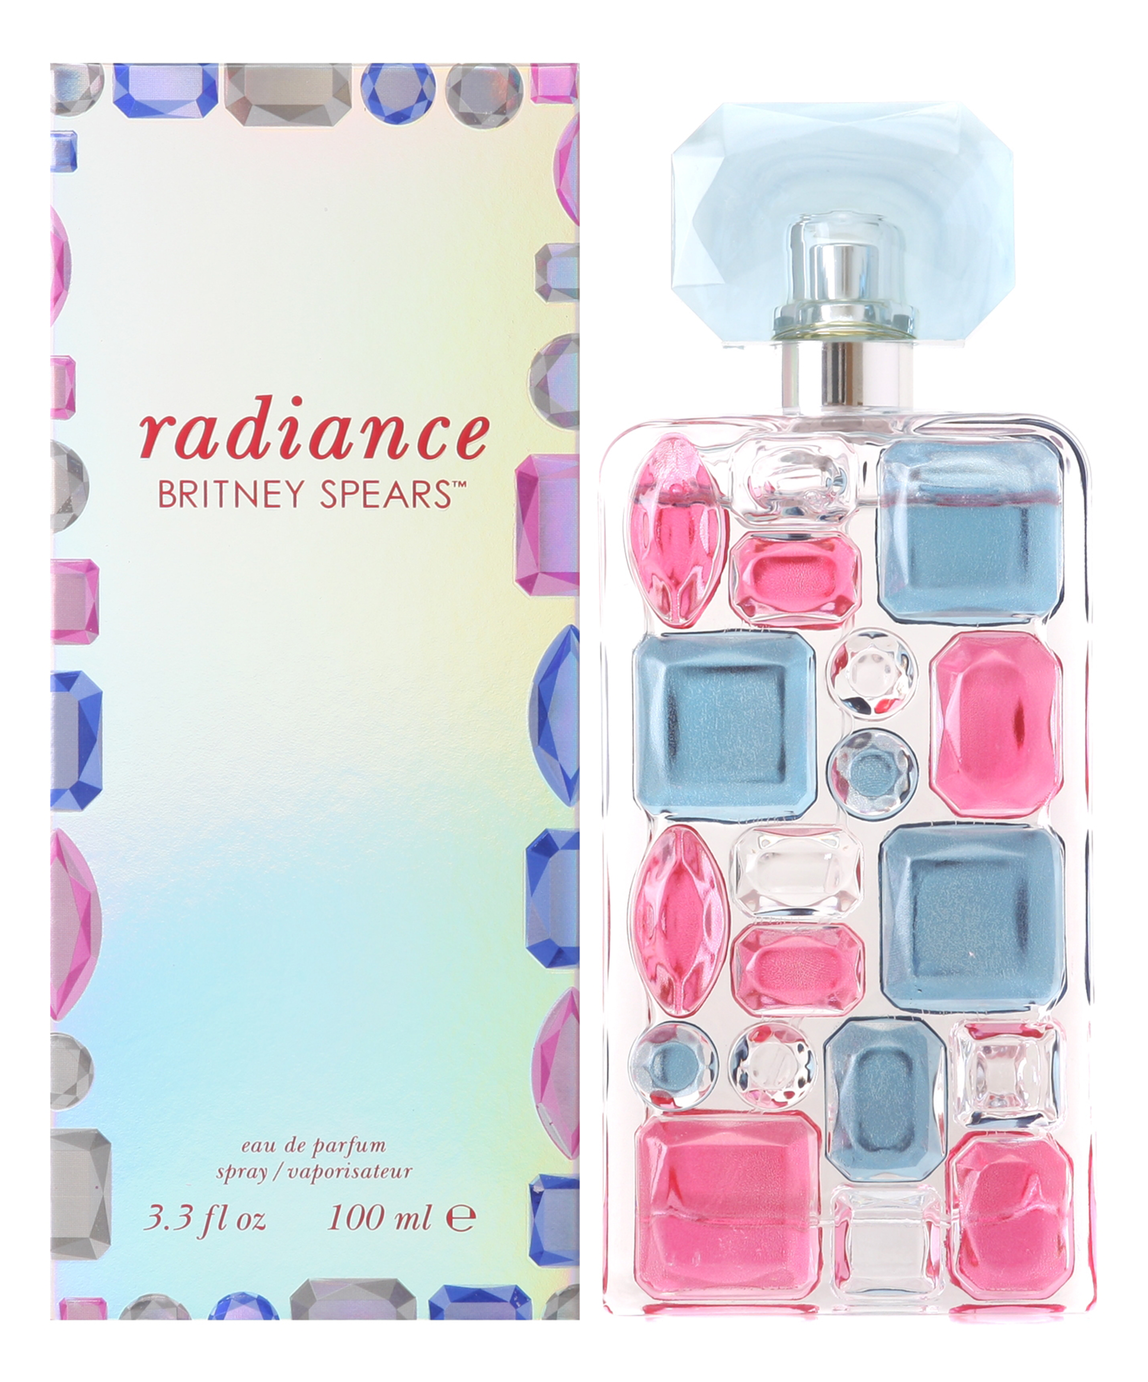 Elizabeth Arden Britney Spears - Radiance reviews ...